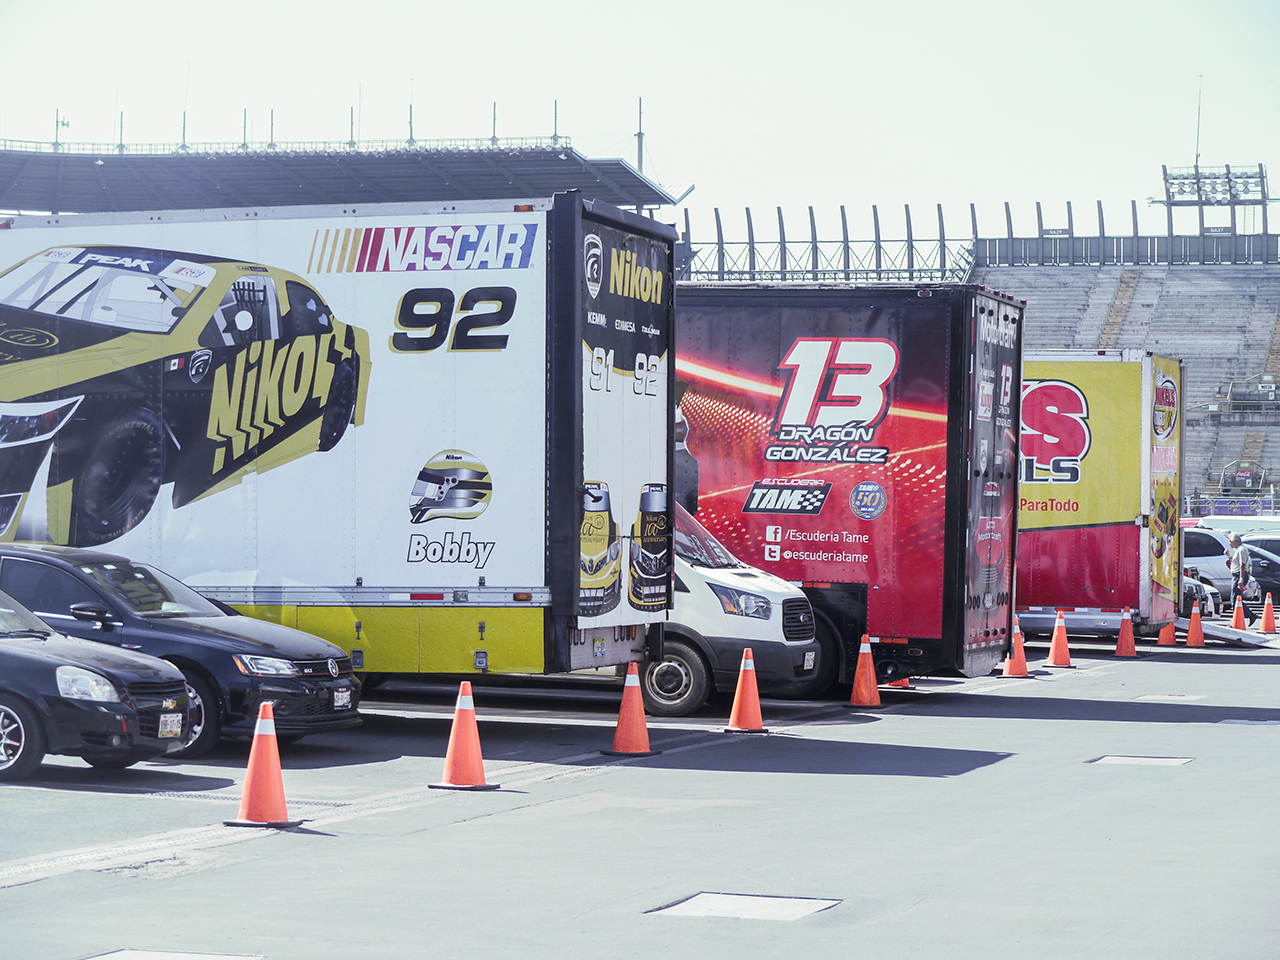 NASCAR Peak Mexico team trailers in the paddock. The NASCAR teams also race touring cars.